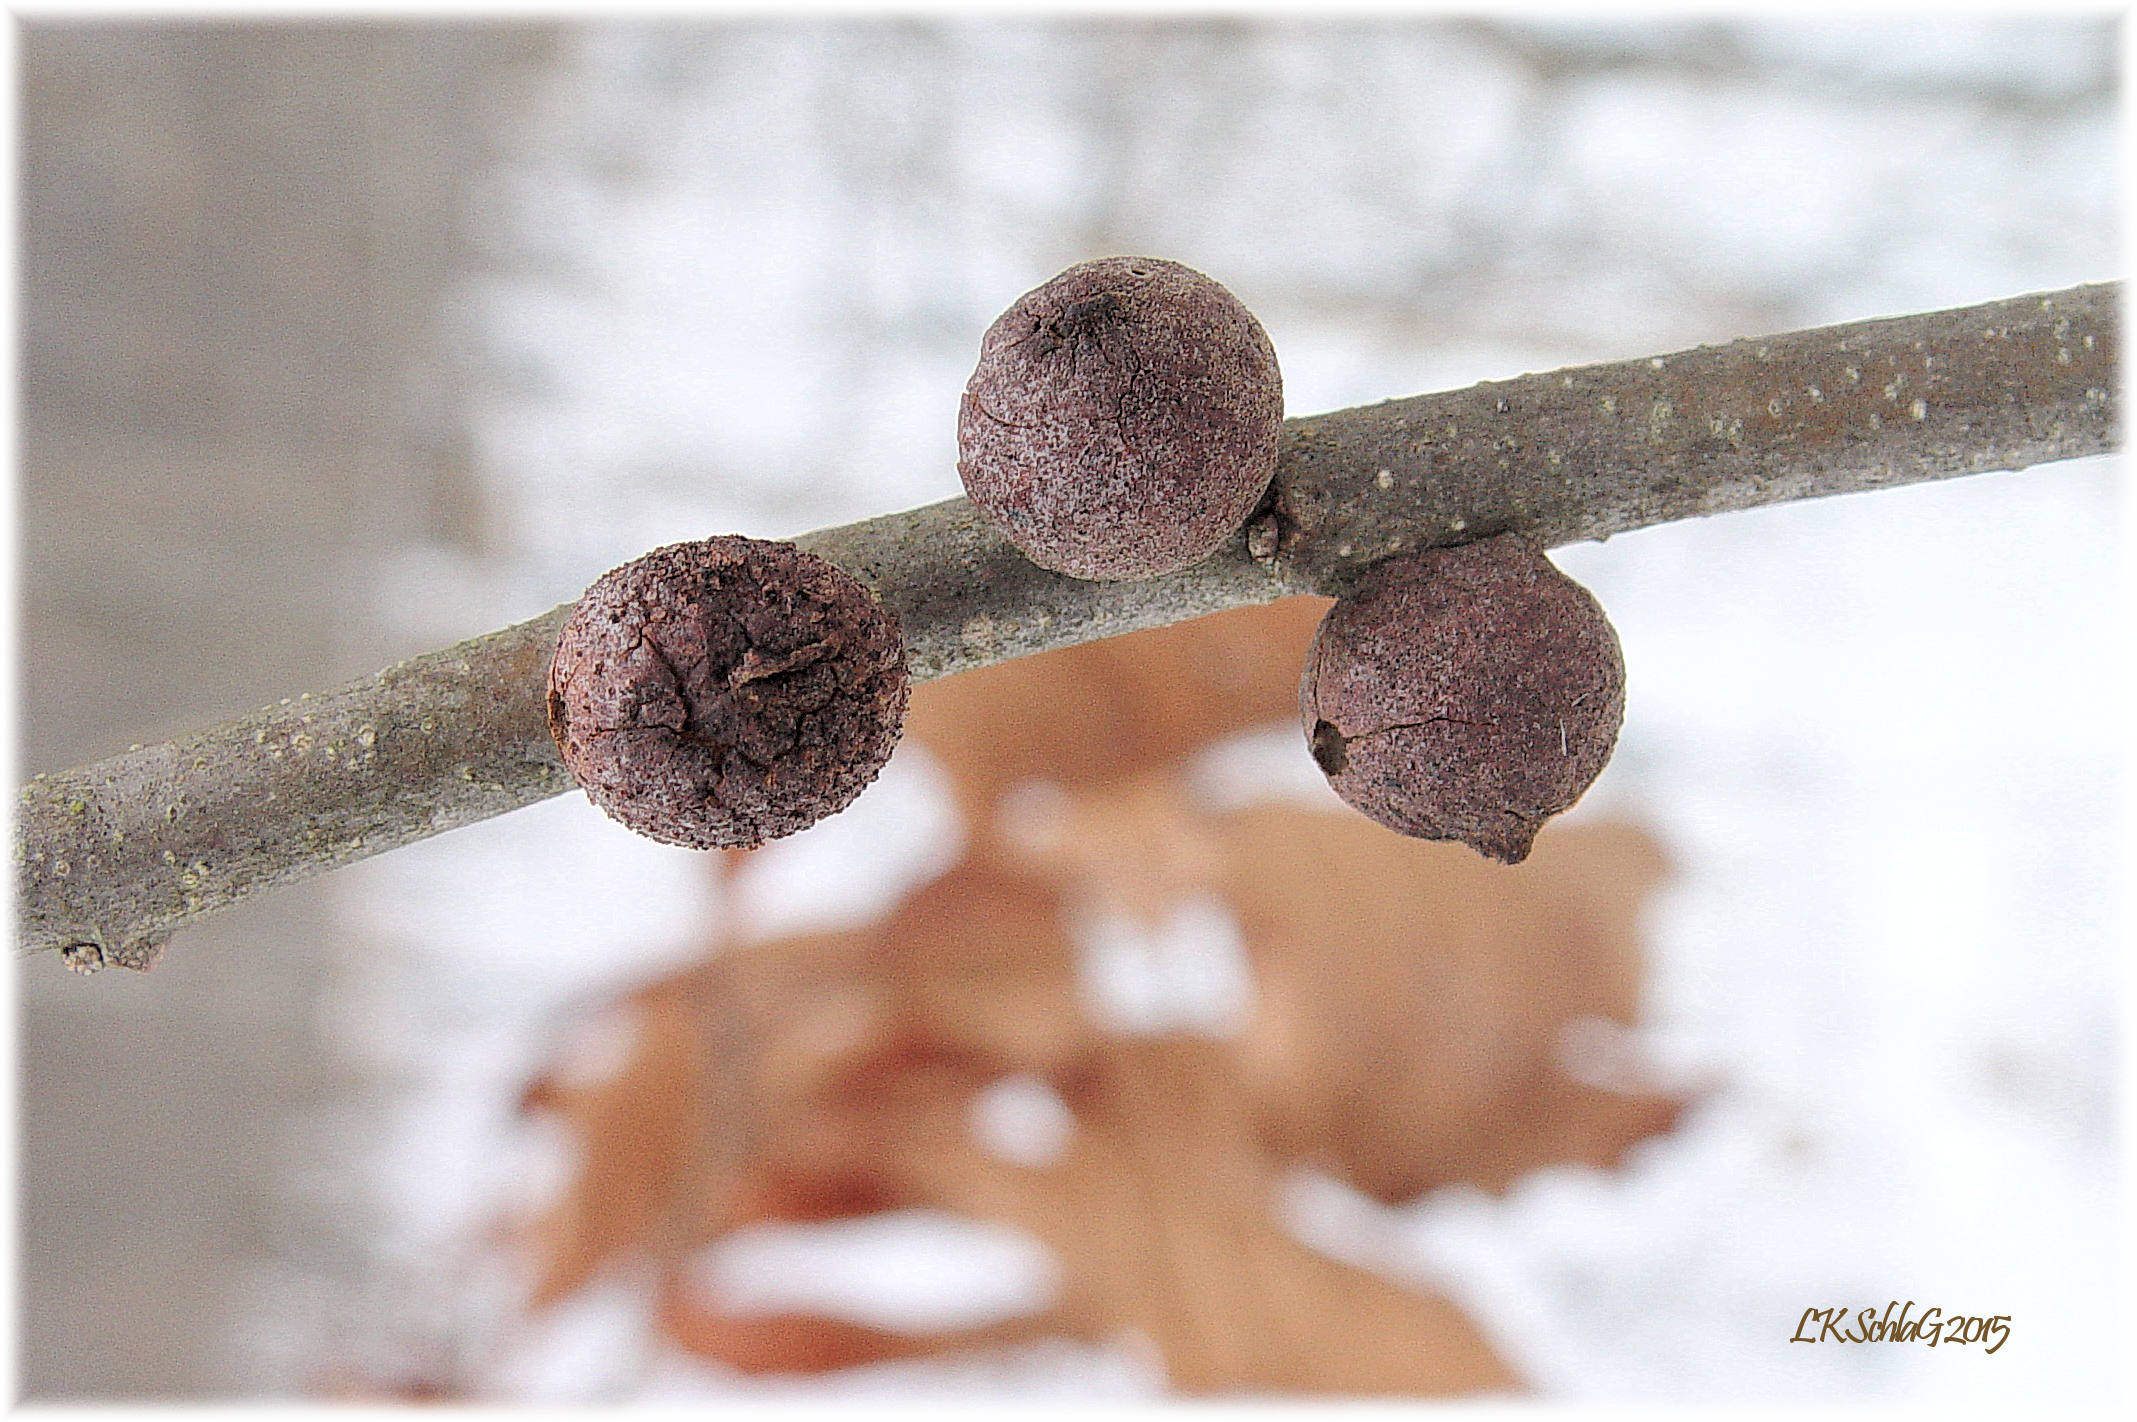 more oak rough bullet galls